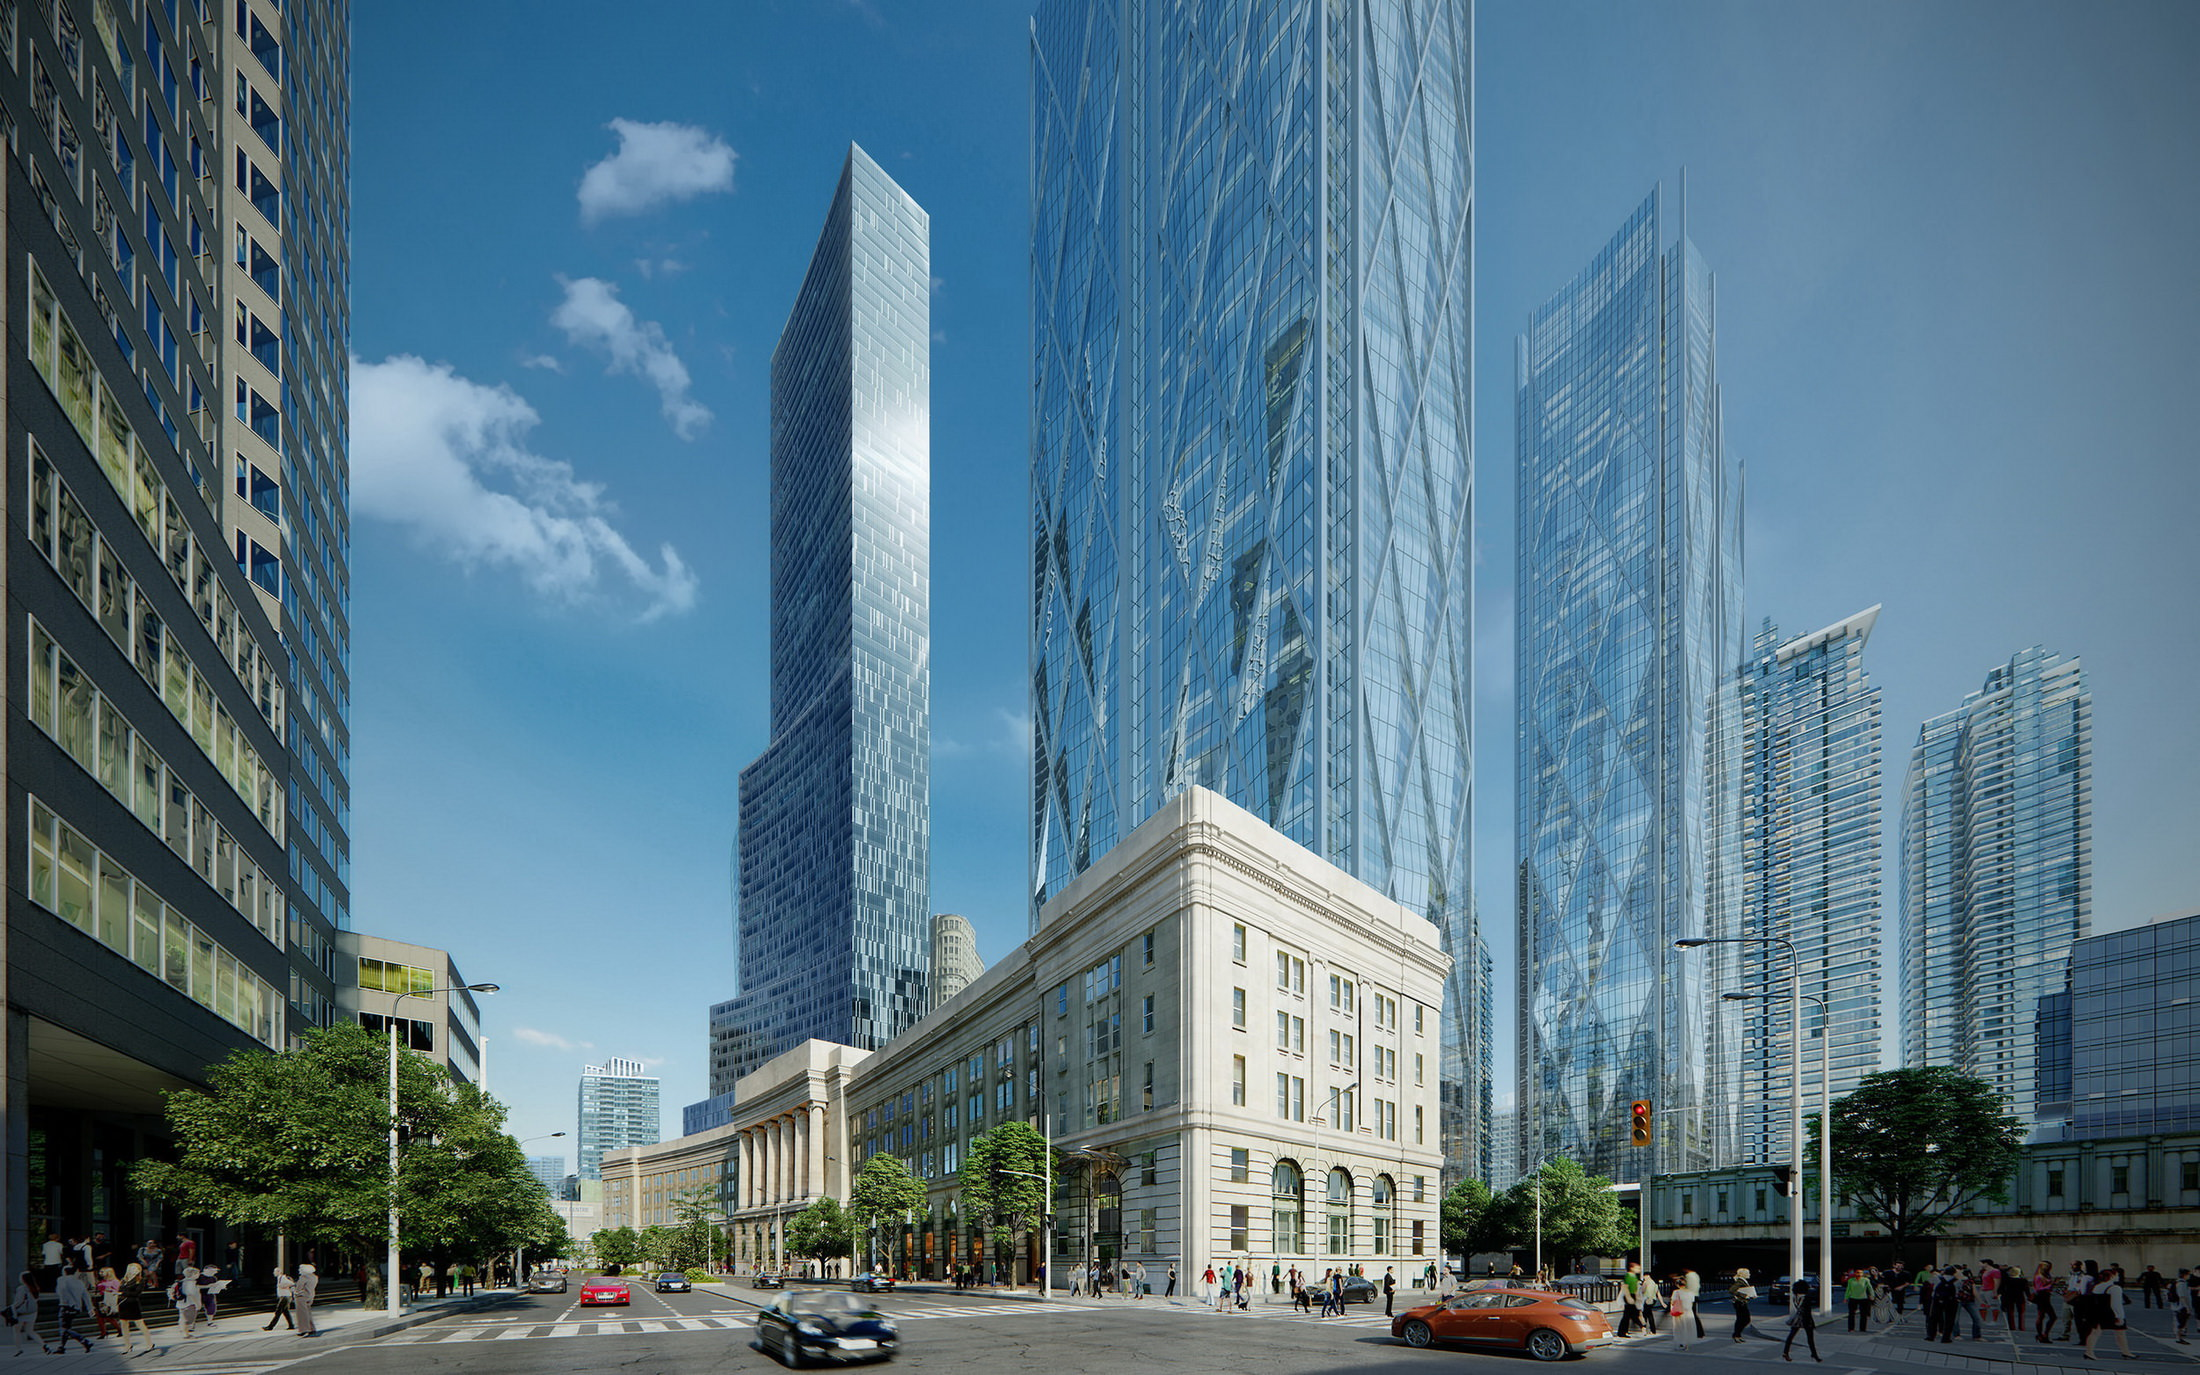 High-end architectural visualization of a skyscraper concept among the existing historic buildings, 3D street view in daylight